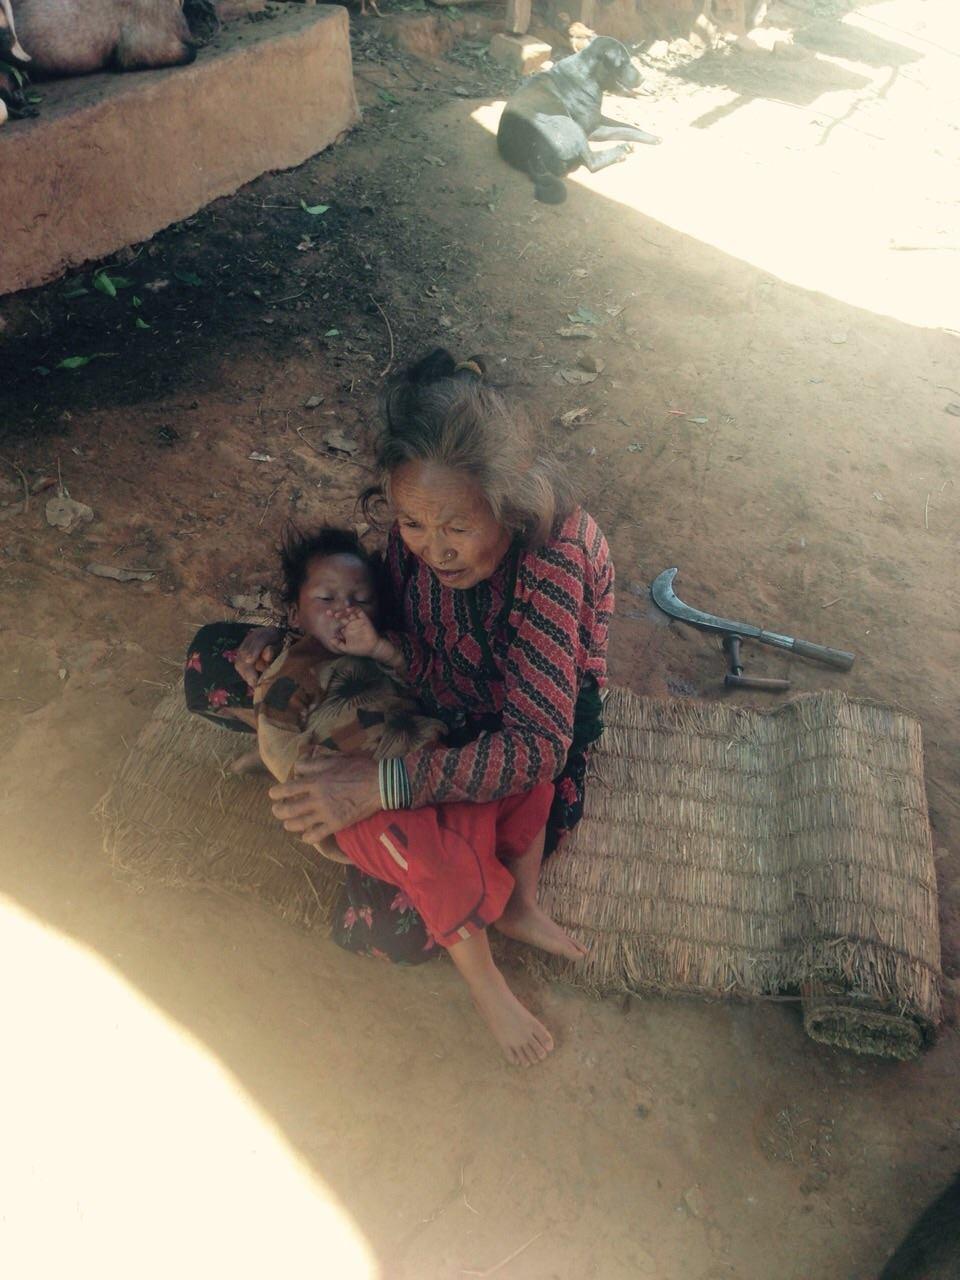 Victims of the quake trying to find shelter in Shikharpur village, Sindhupalchowk distric